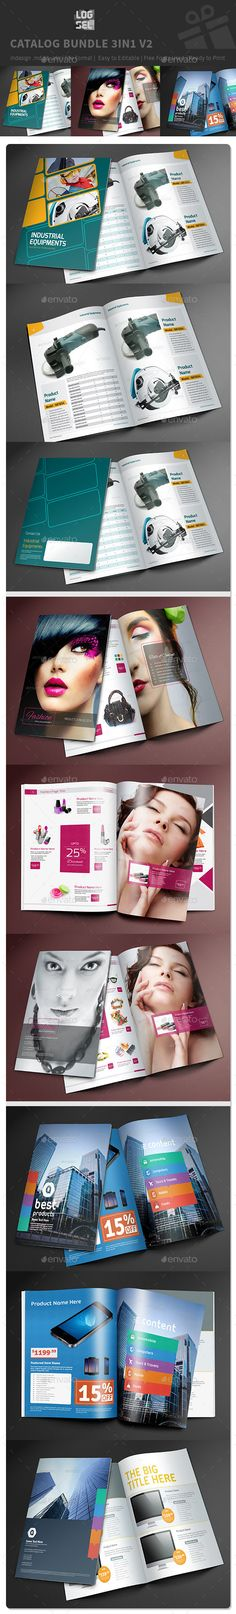 Awesome Catalog Bundle 3in1 - InDesign Template • Only available here ➝ http://graphicriver.net/item/catalog-bundle-3in1-v2-/9603170?ref=pxcr